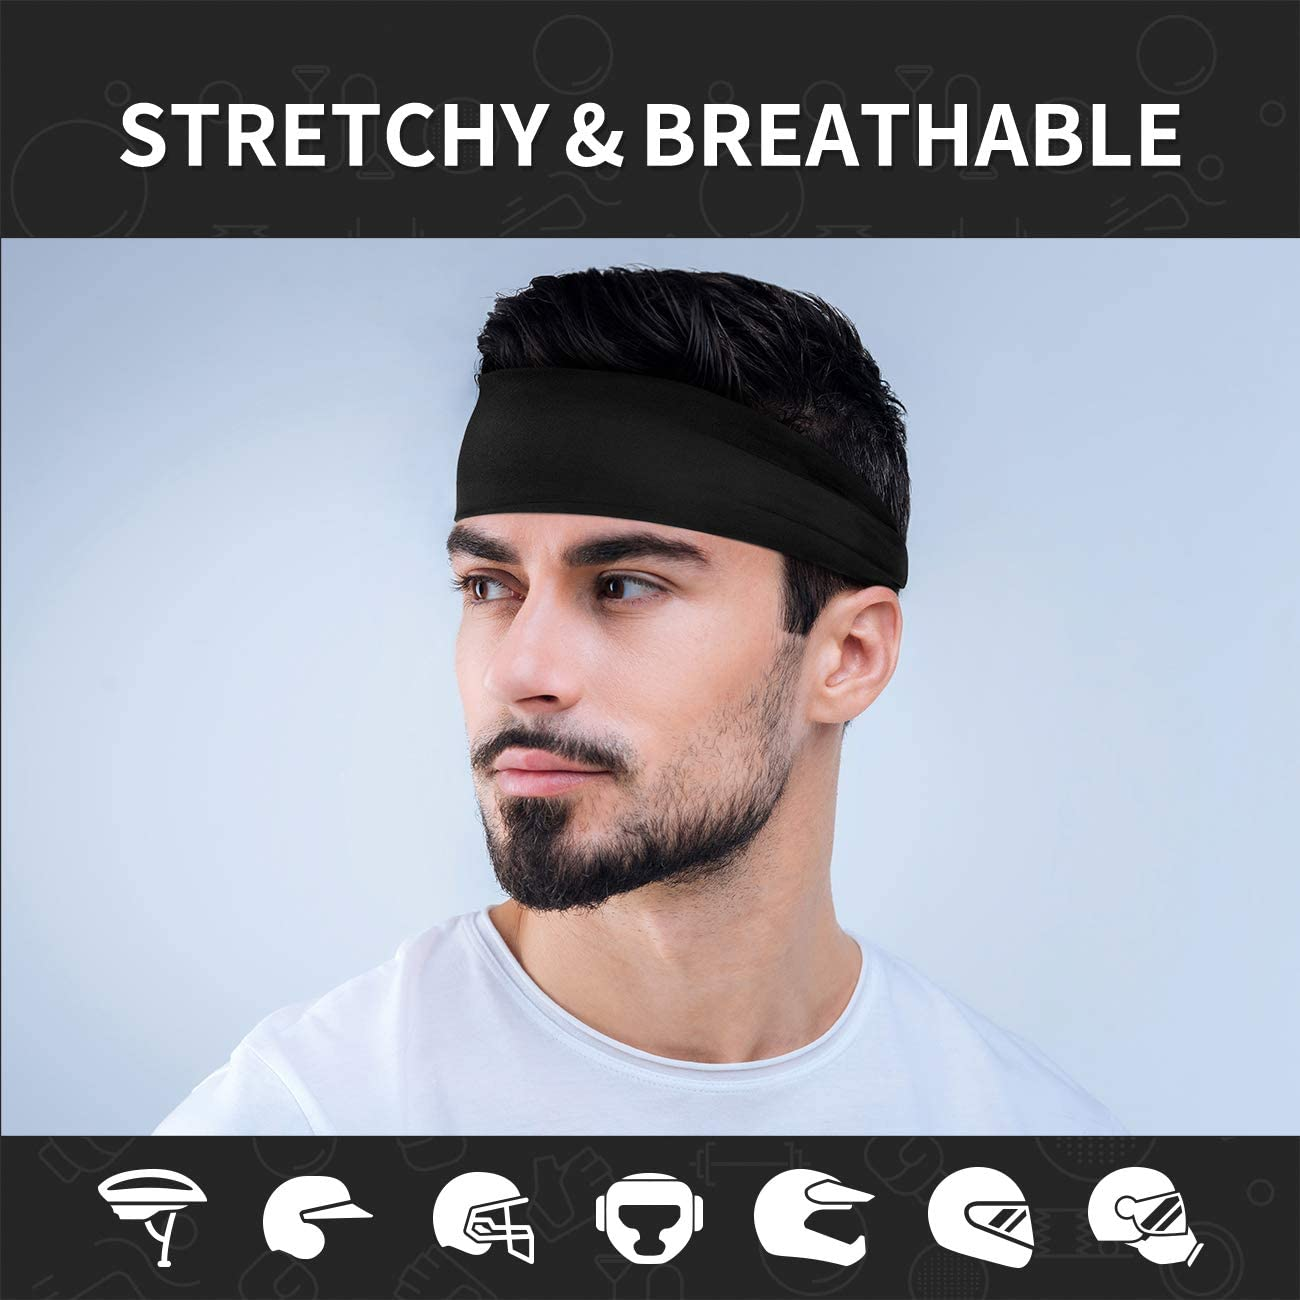 Vinsguir Sports Headbands for Men and Women Cross Training Unisex Hairband Yoga and Bike Non Slip Lightweight Sweat Band Moisture Wicking Workout Sweatbands for Running